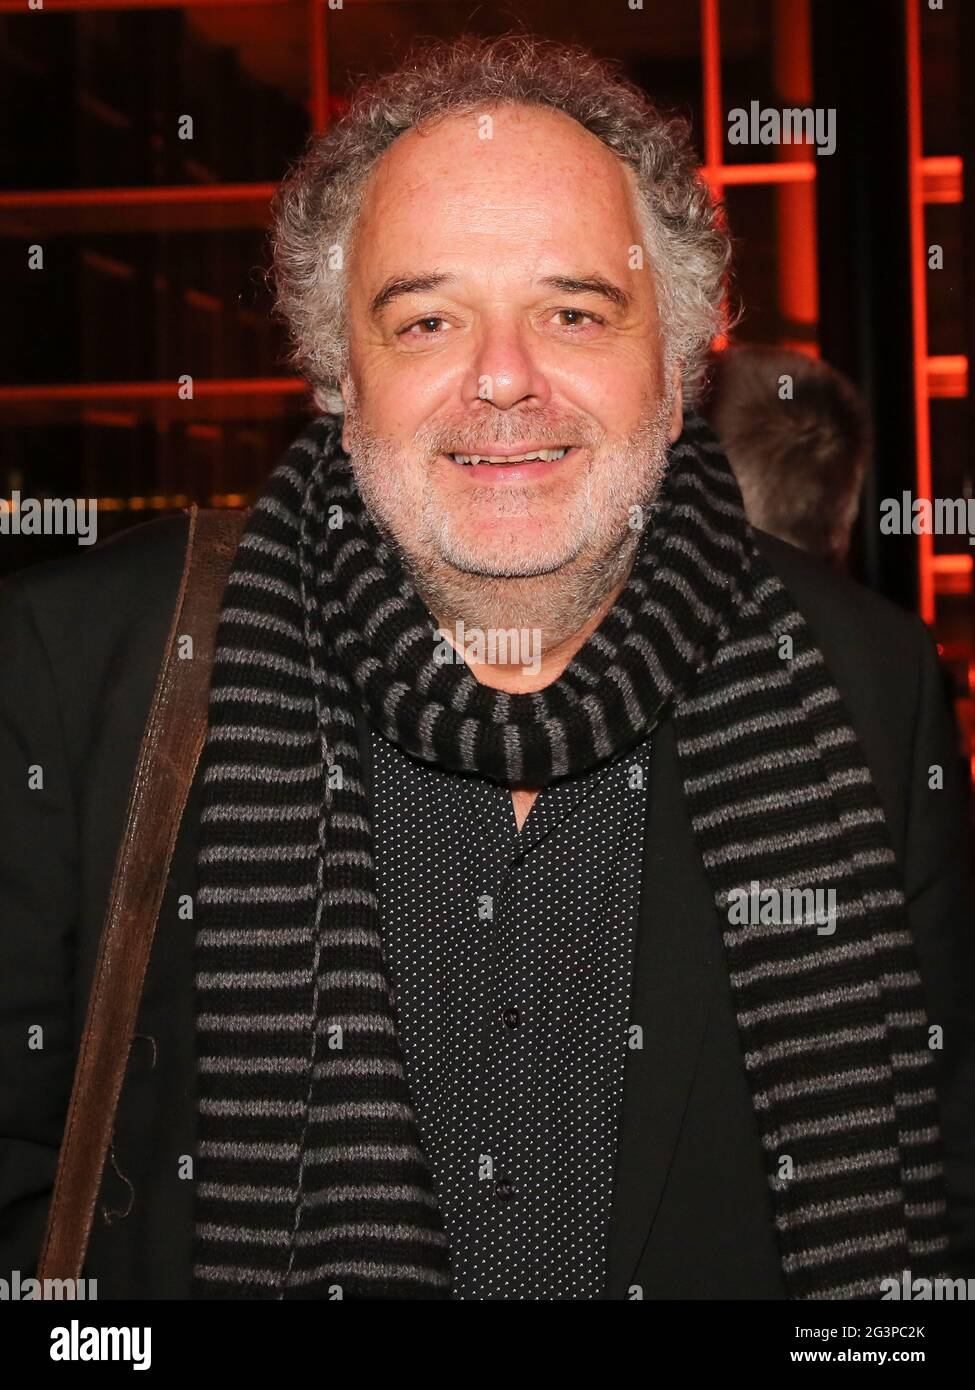 Peter Dreckmann MDR head of entertainment at 25th José Carreras Gala on December 12th, 2019 Leipzig Stock Photo